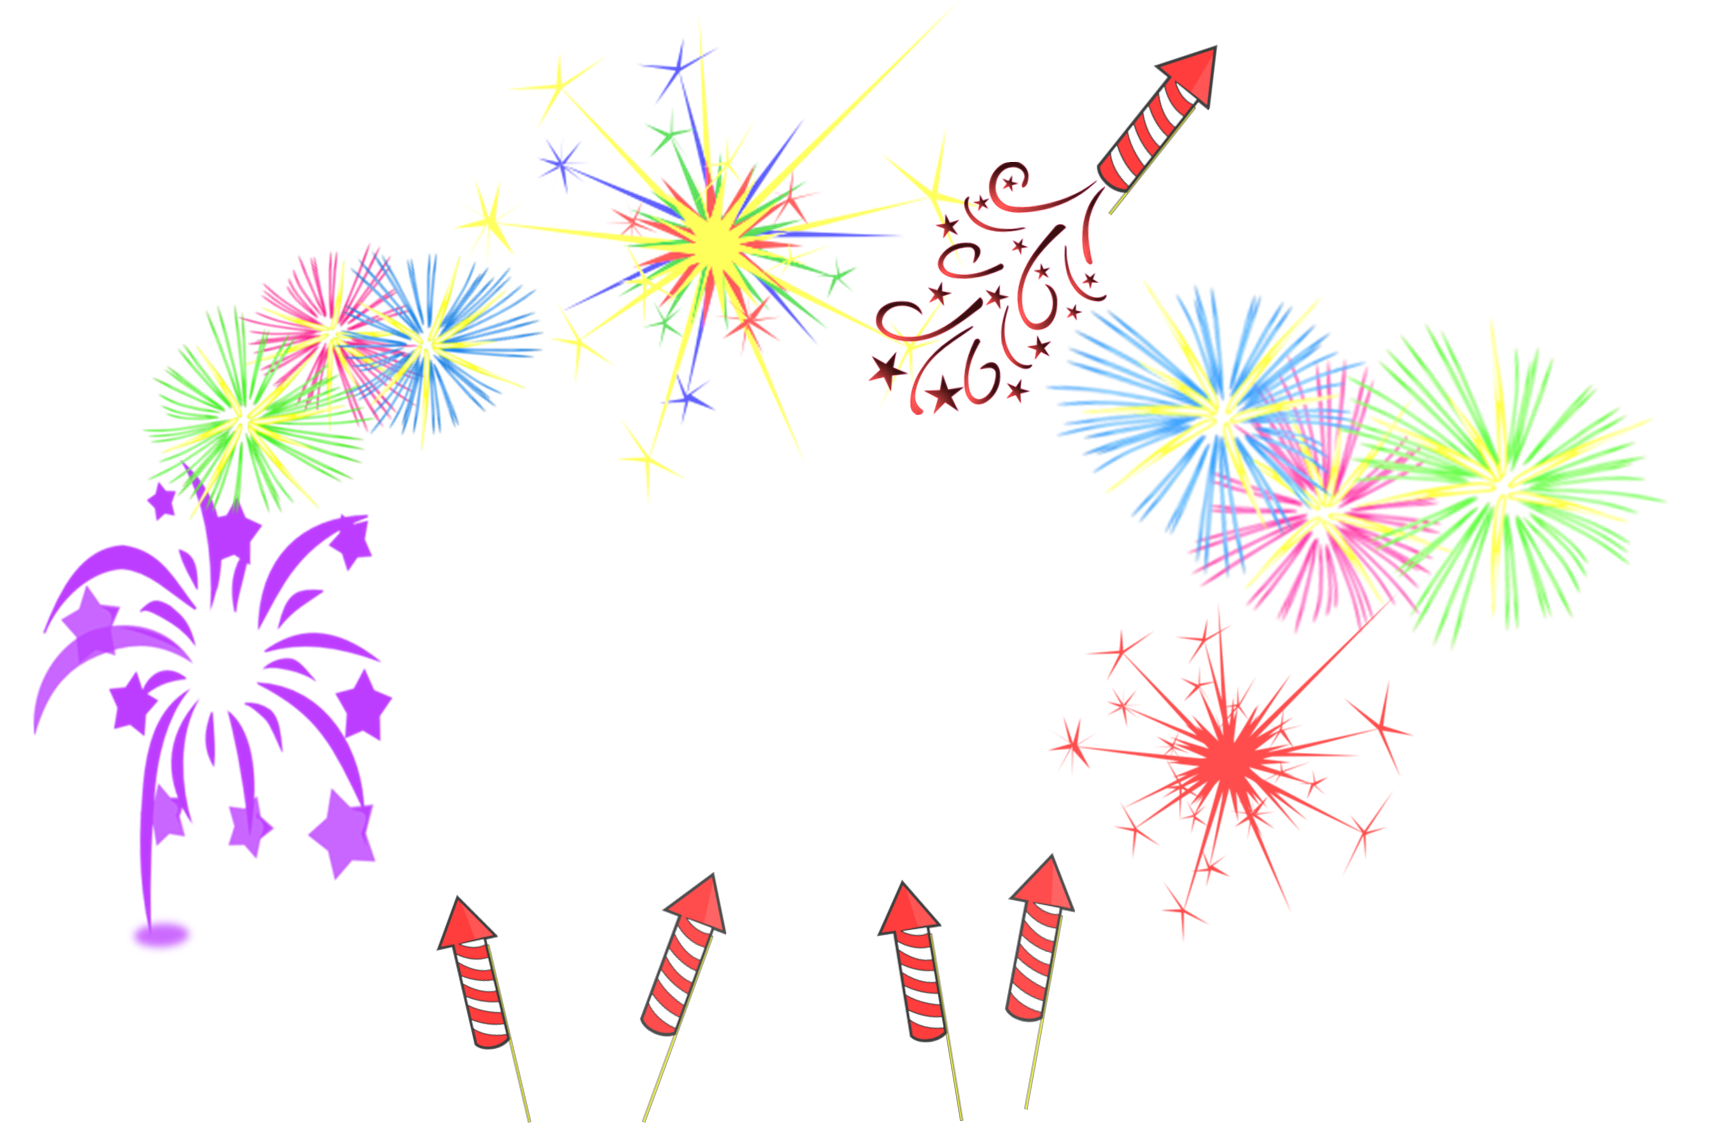 Fireworks clipart well done, Fireworks well done Transparent.